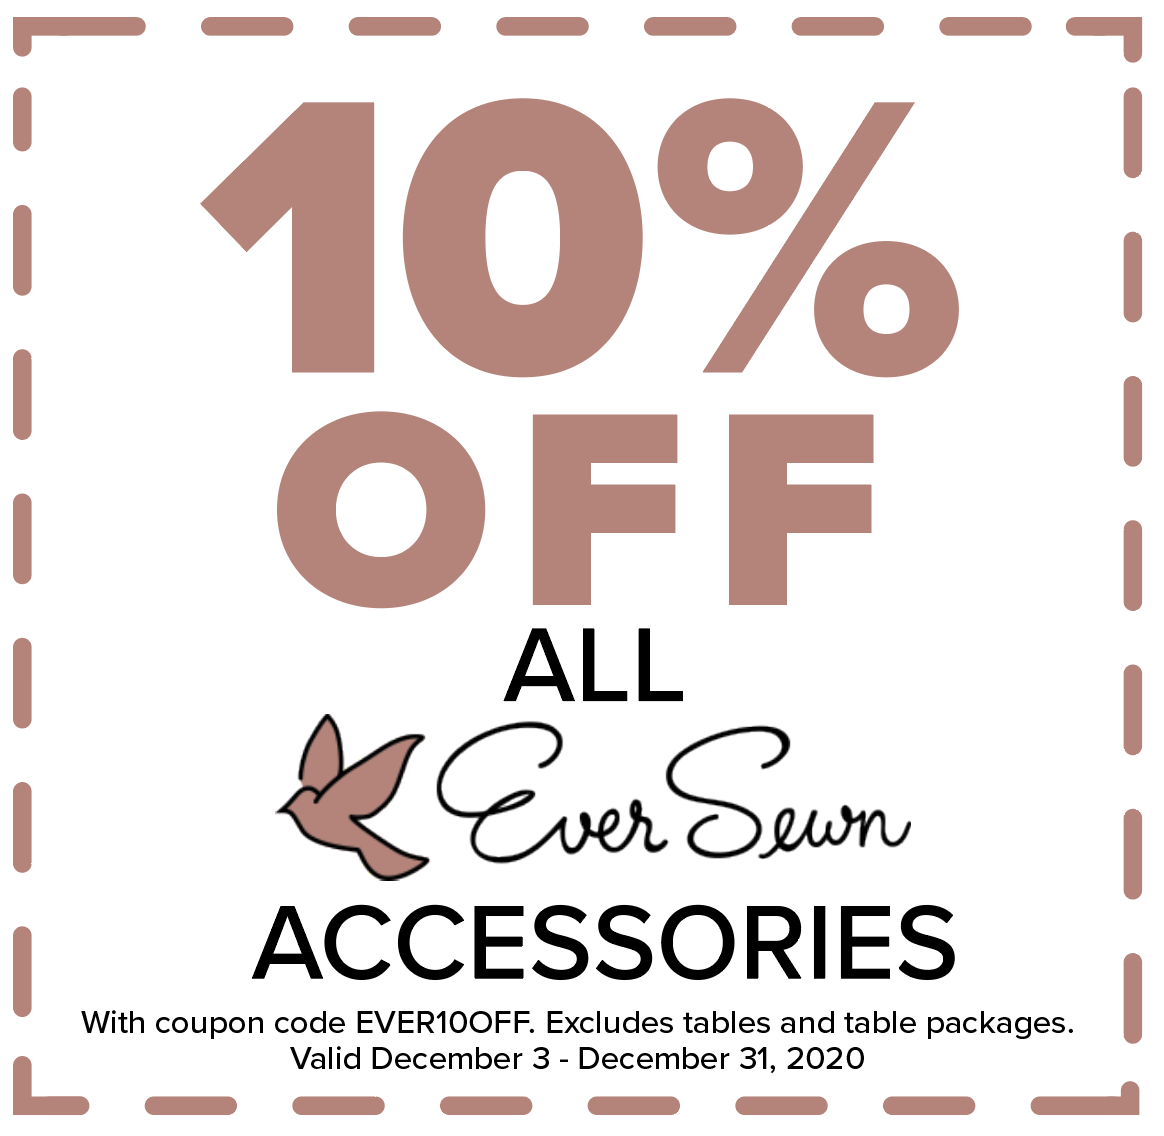 EverSewn 10% off all accessories